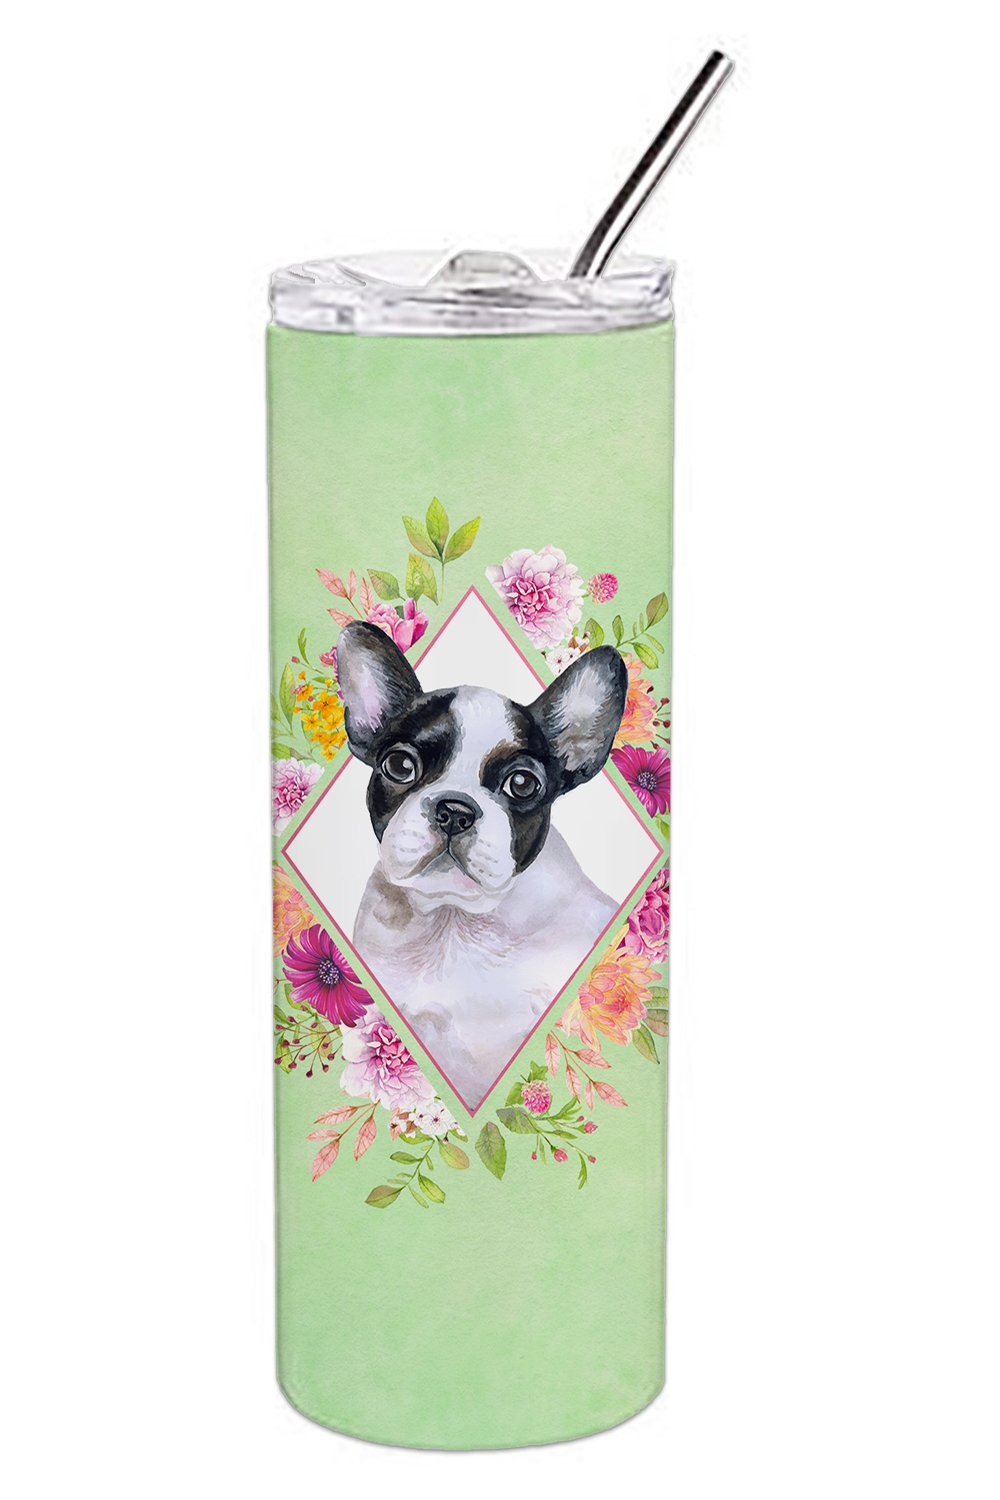 French Bulldog Green Flowers Double Walled Stainless Steel 20 oz Skinny Tumbler CK4303TBL20 by Caroline's Treasures